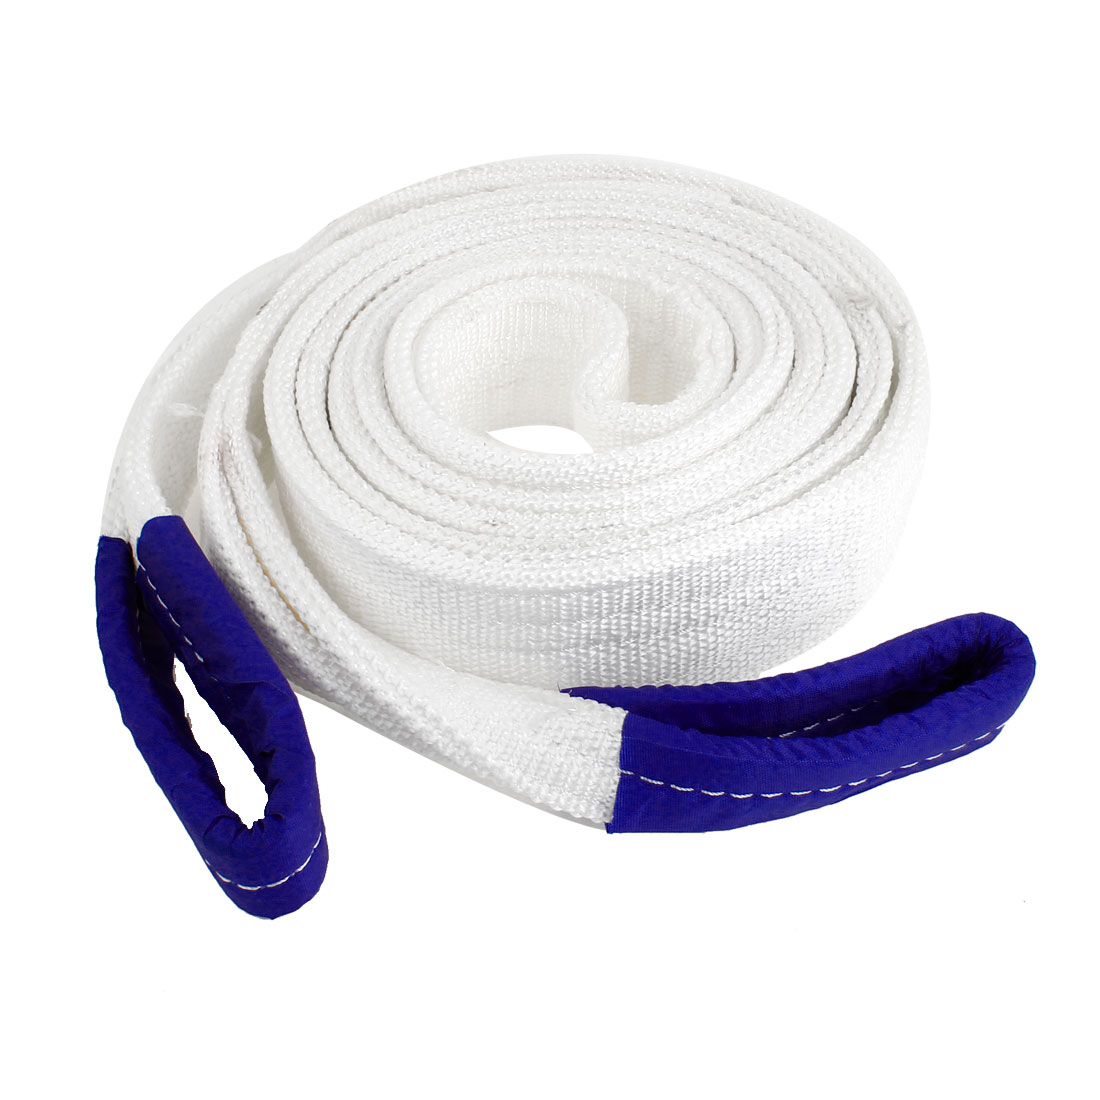 4M x 60mm Nylon Security Double Layers Towing Rope White 8 Tons for Car